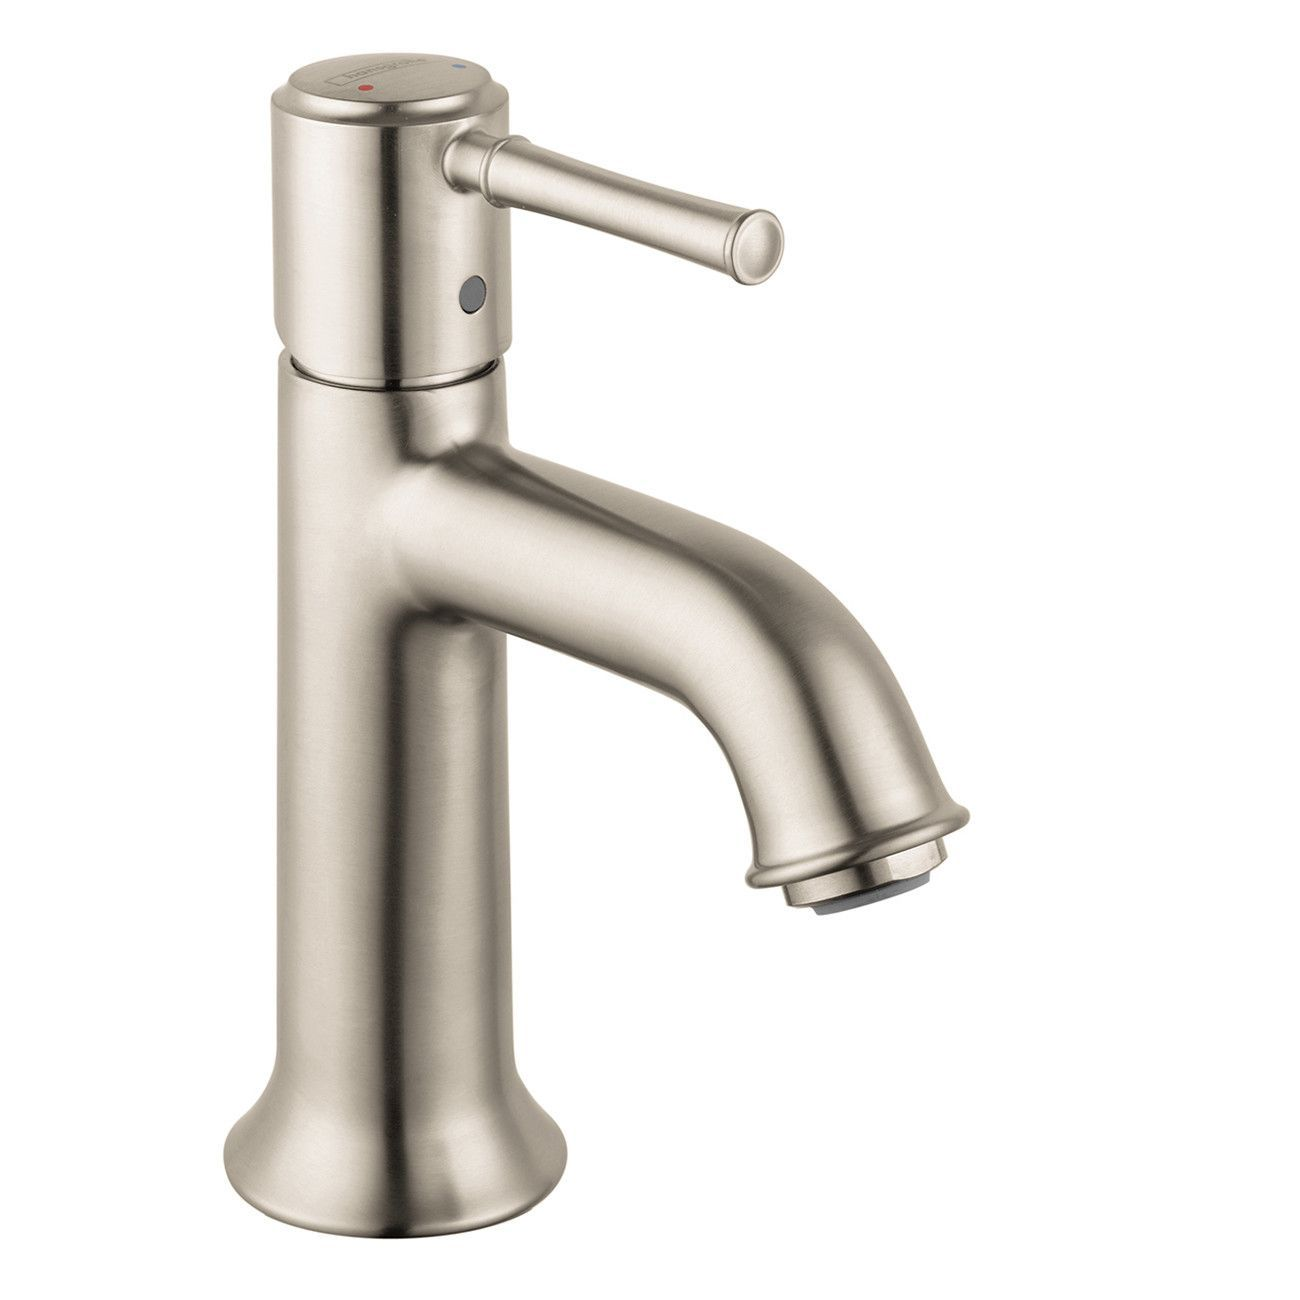 The Awesome Web Hansgrohe Chrome Talis C Bathroom Faucet Single Hole Faucet with Lever Handle